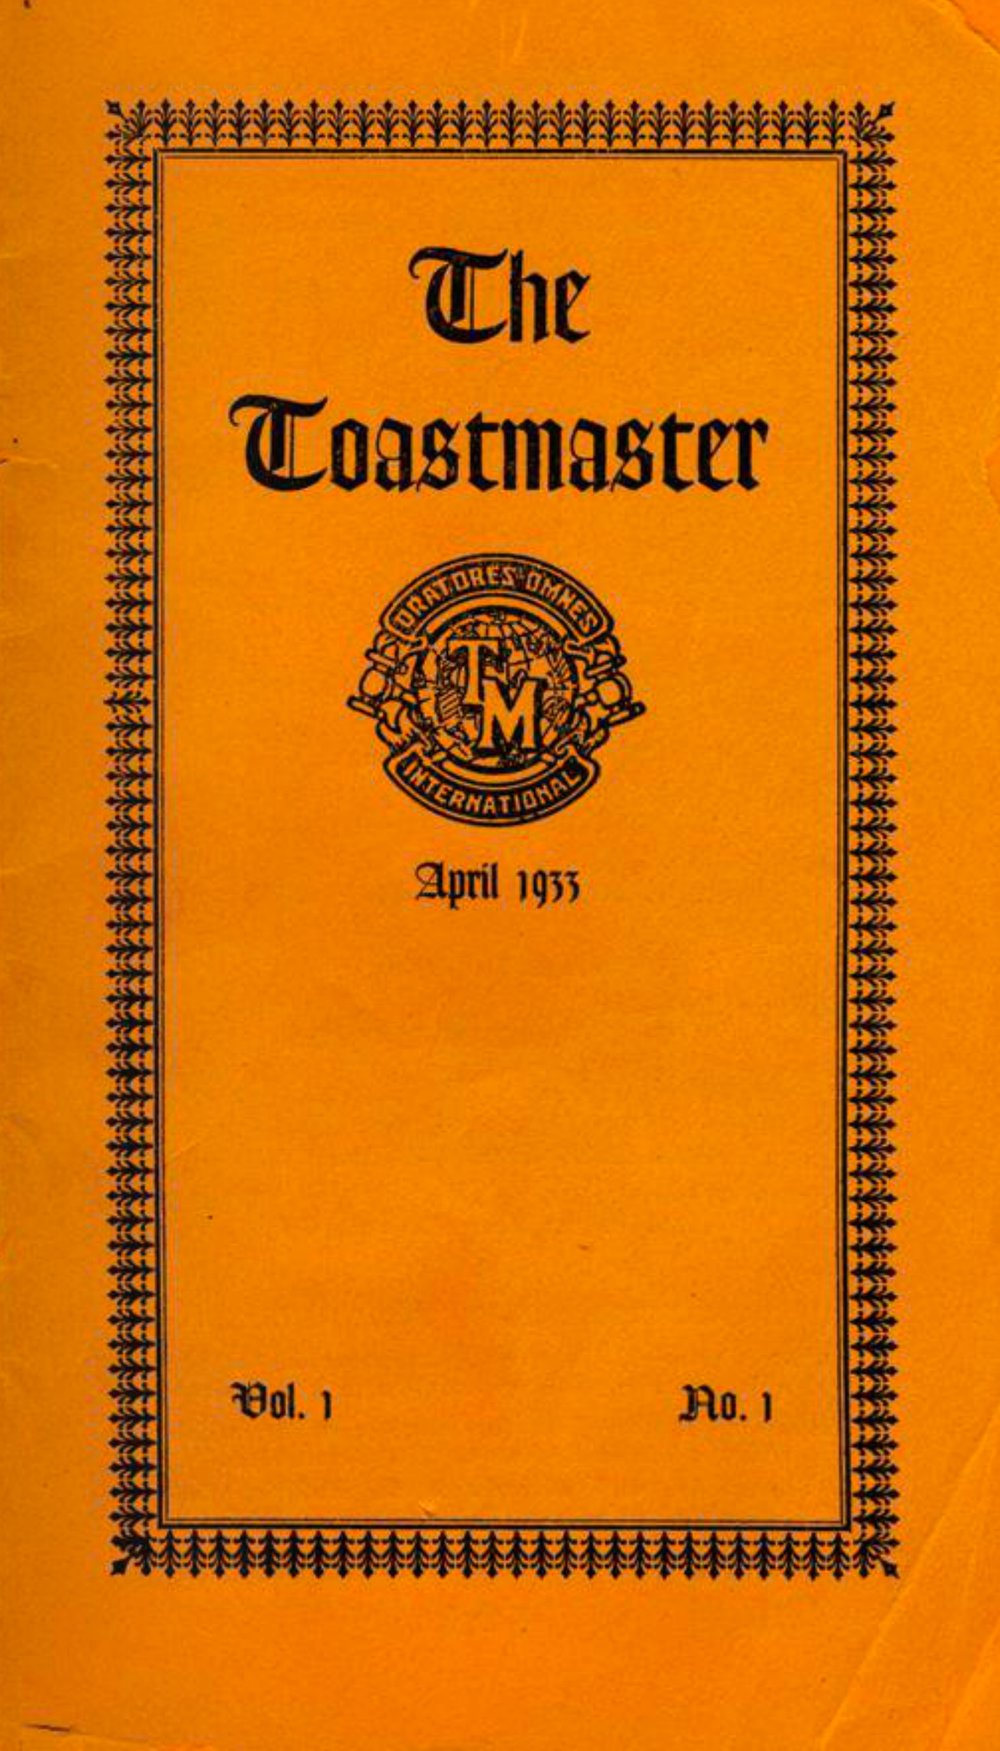 First issue of the Toastmaster magazine, april 1933